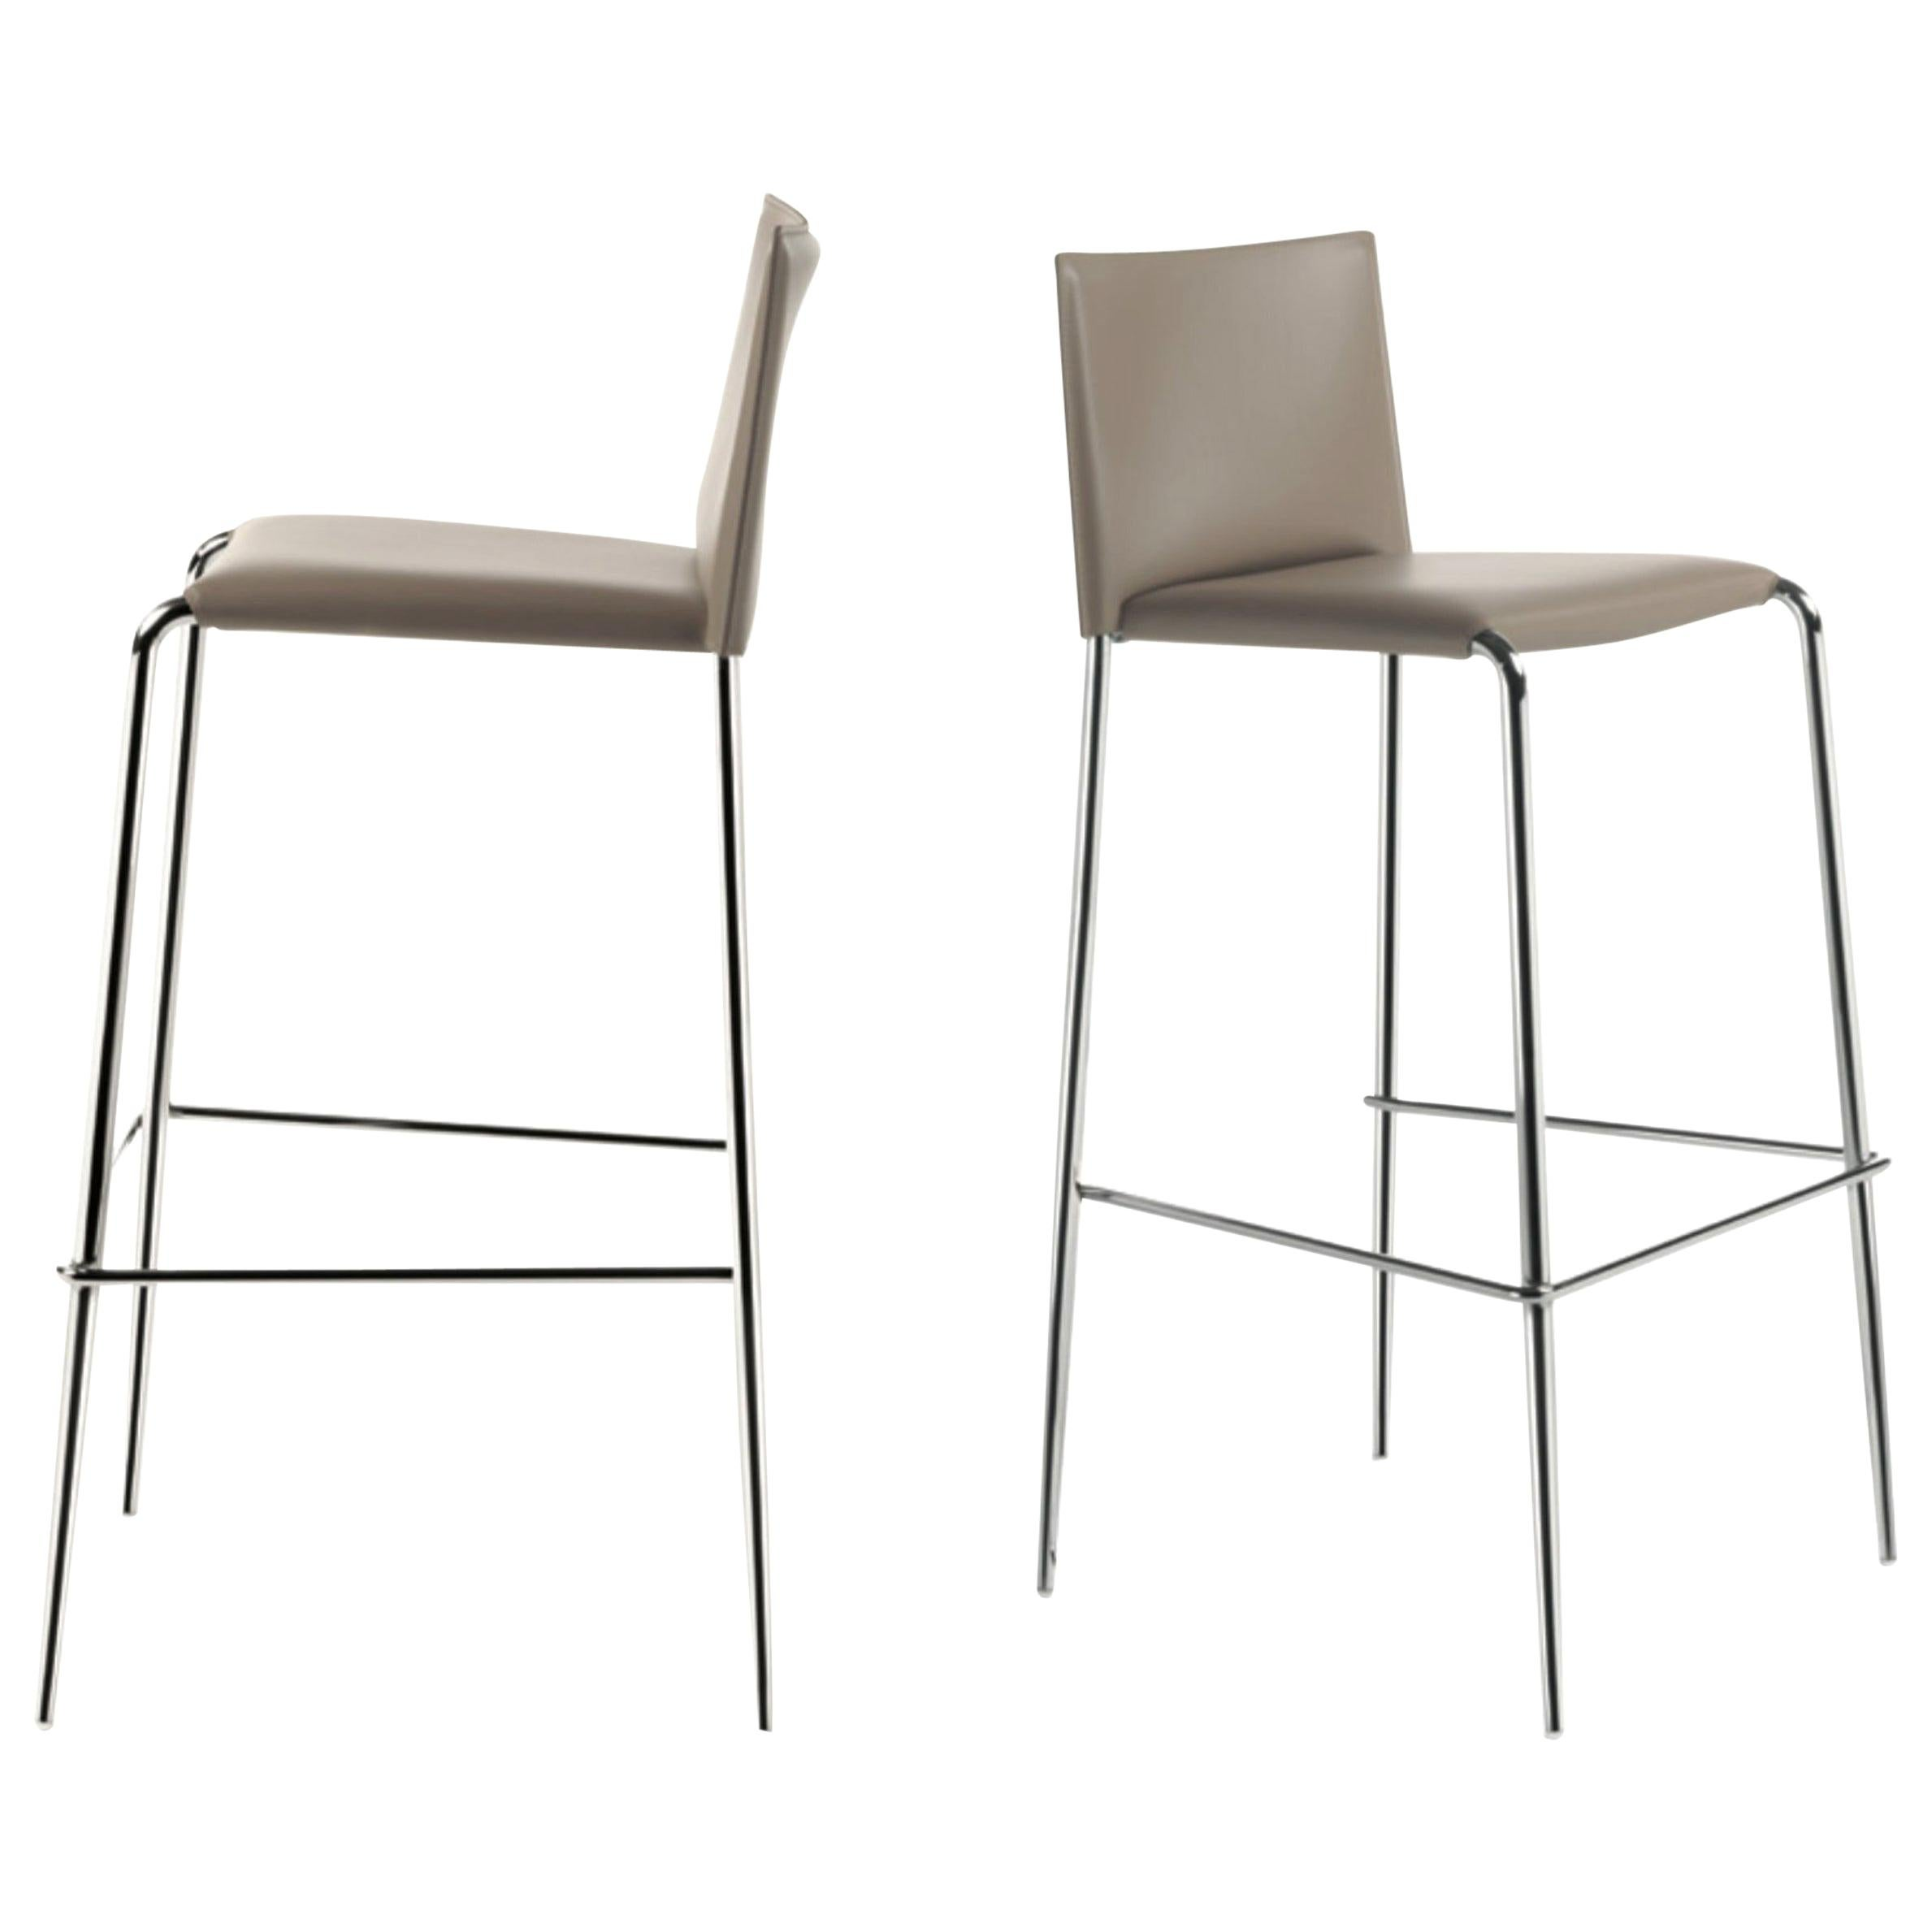 Italian Modern Bar Stools Leather And Chrome Or Painted Black Or White For Sale At 1stdibs